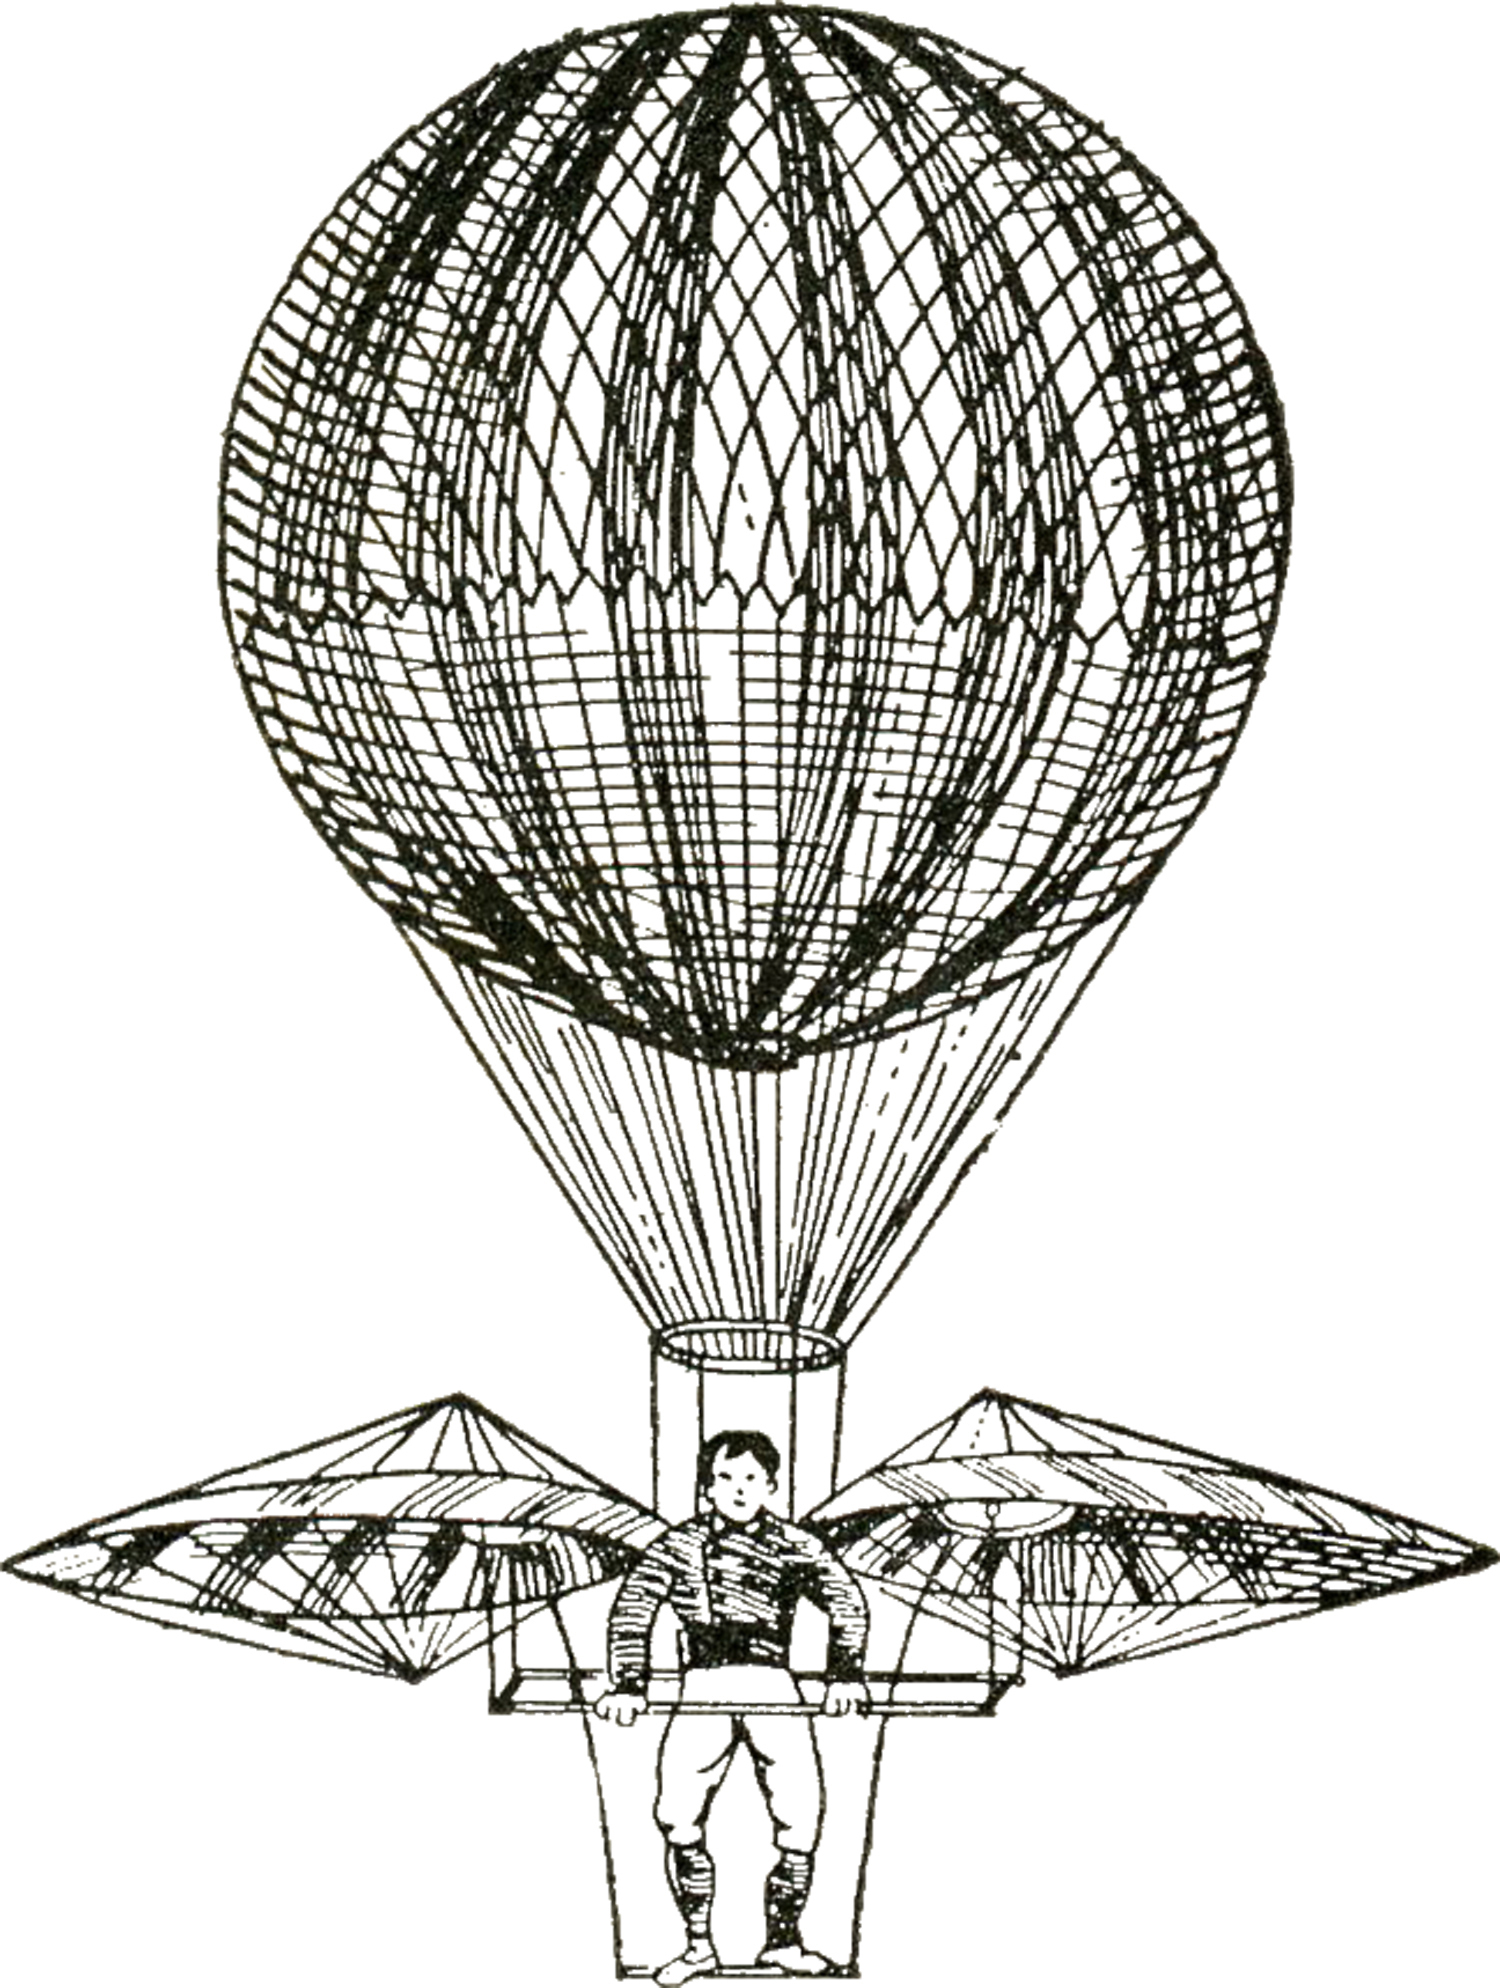 Vintage Images - Hot Air Balloons Steampunk